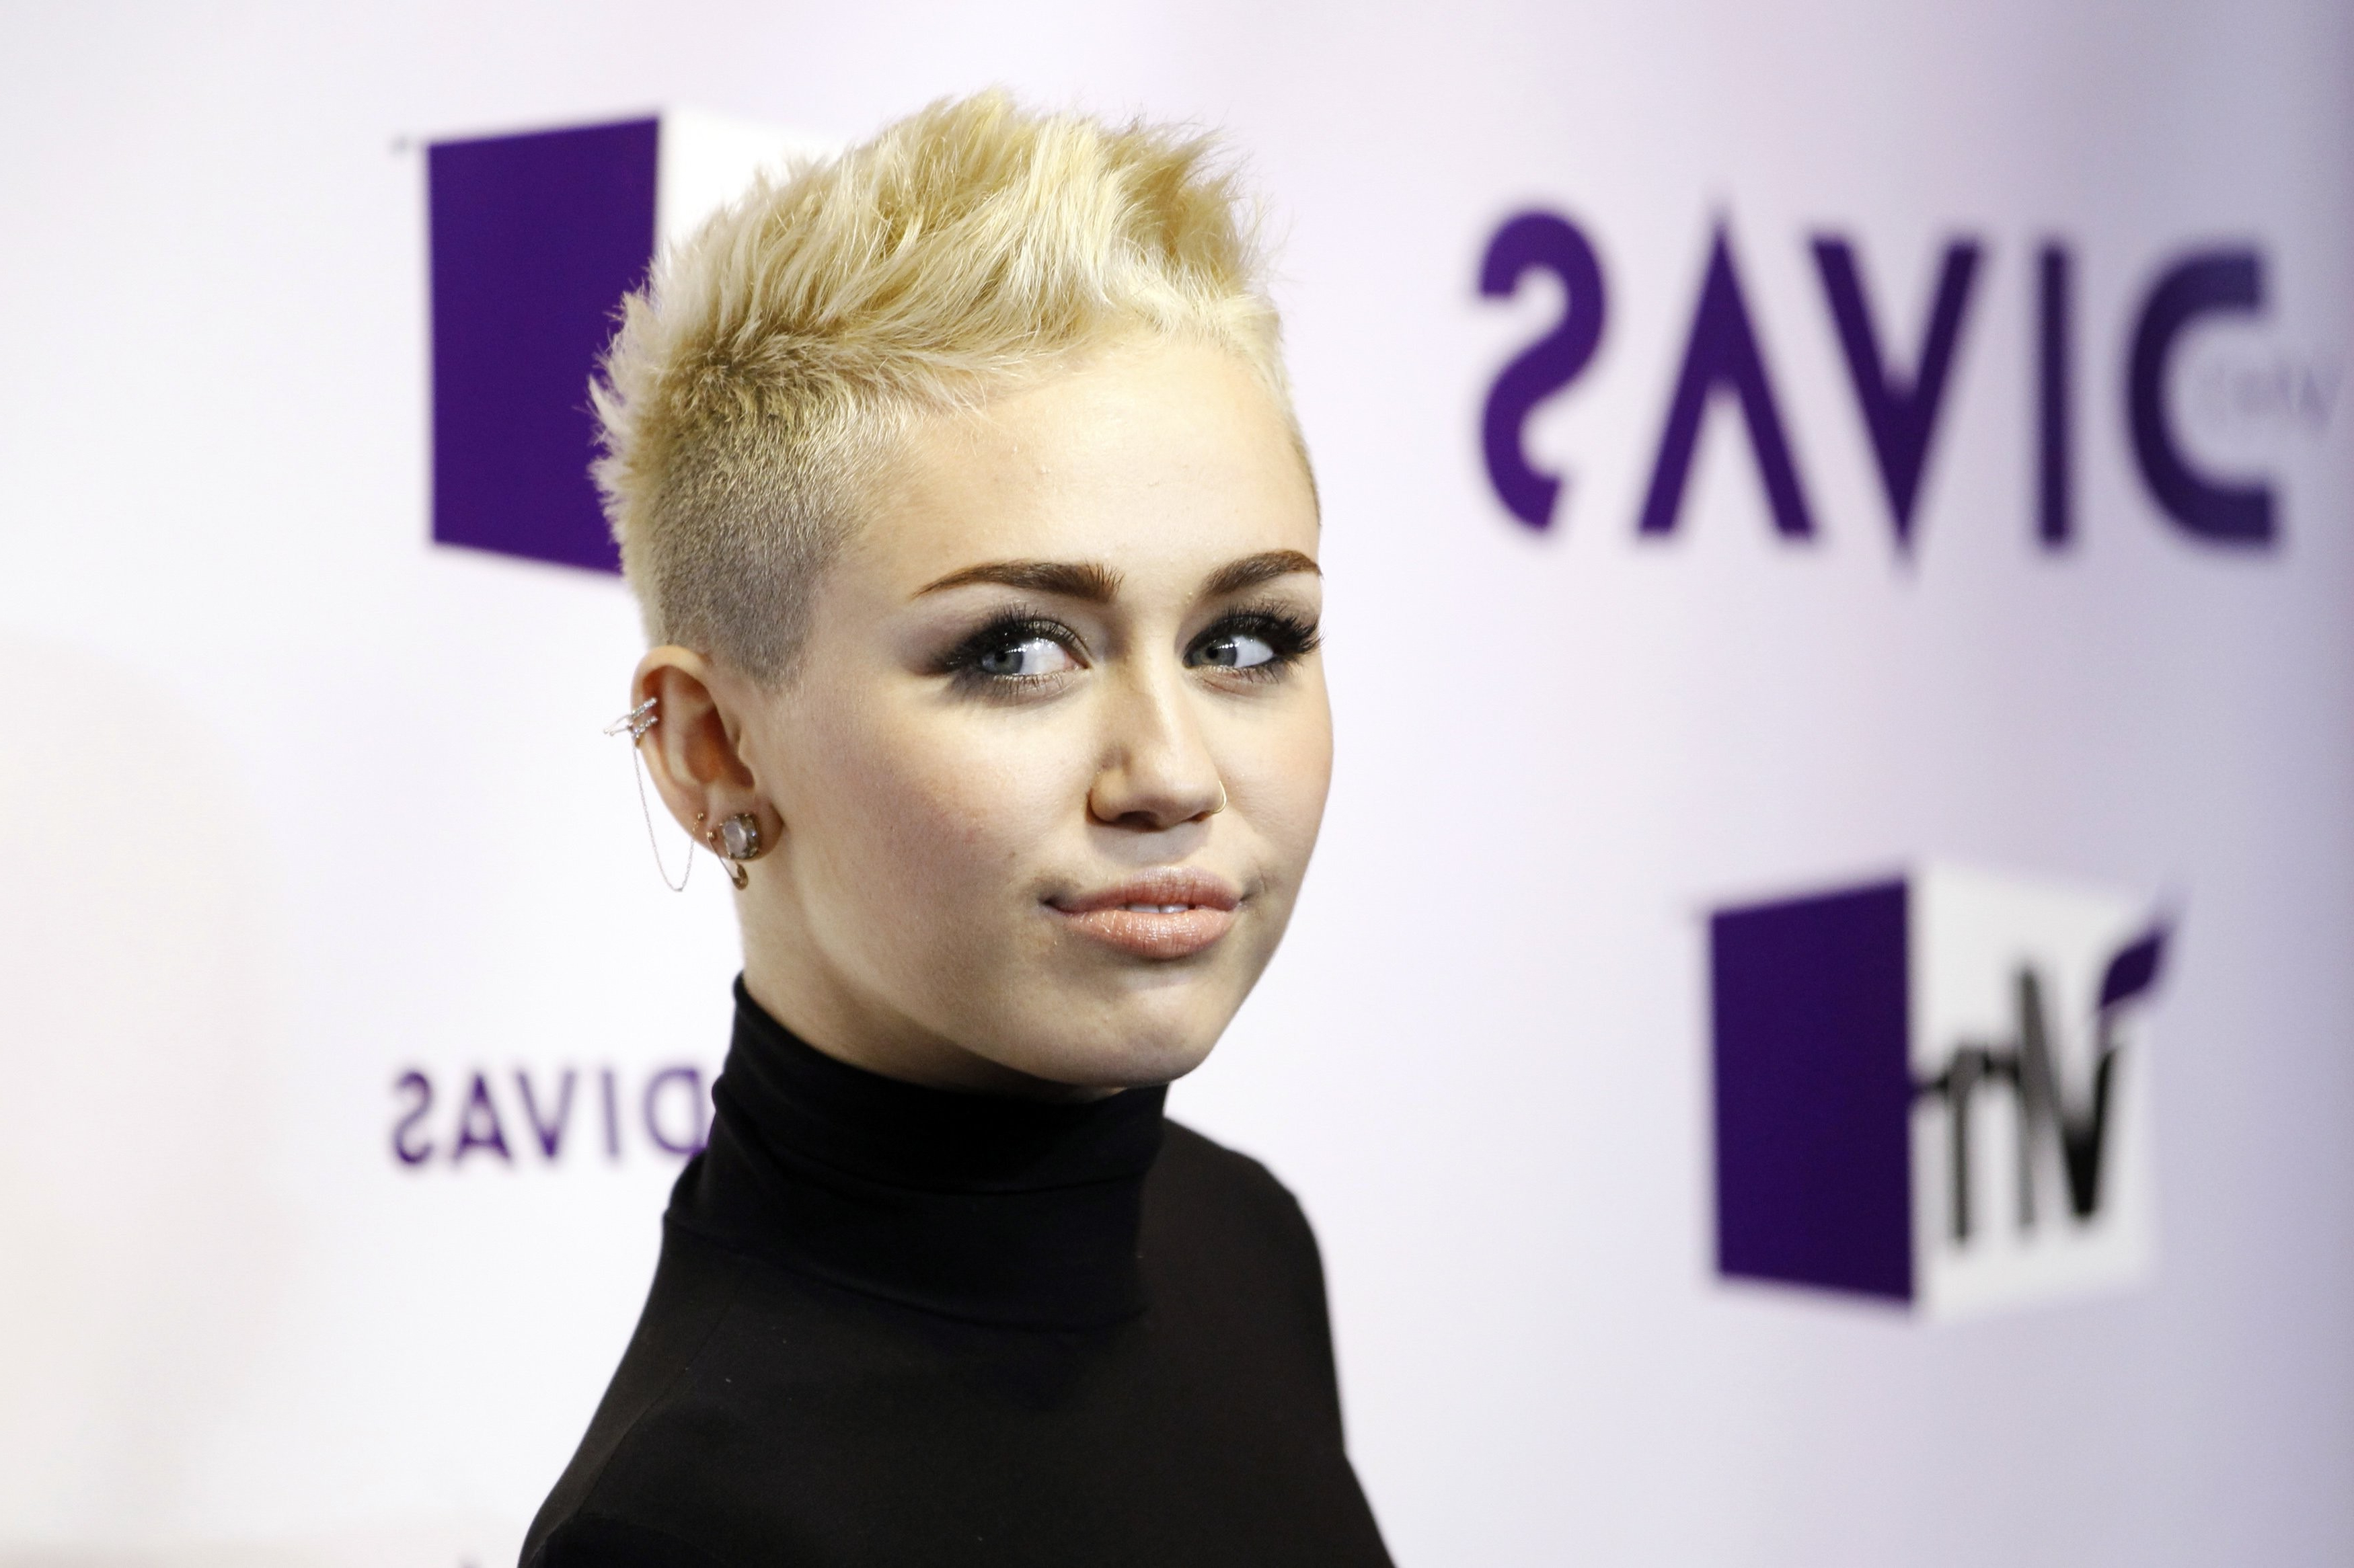 Miley Cyrus Actress Short Hair Singers Wallpaper | Allwallpaper (View 25 of 25)